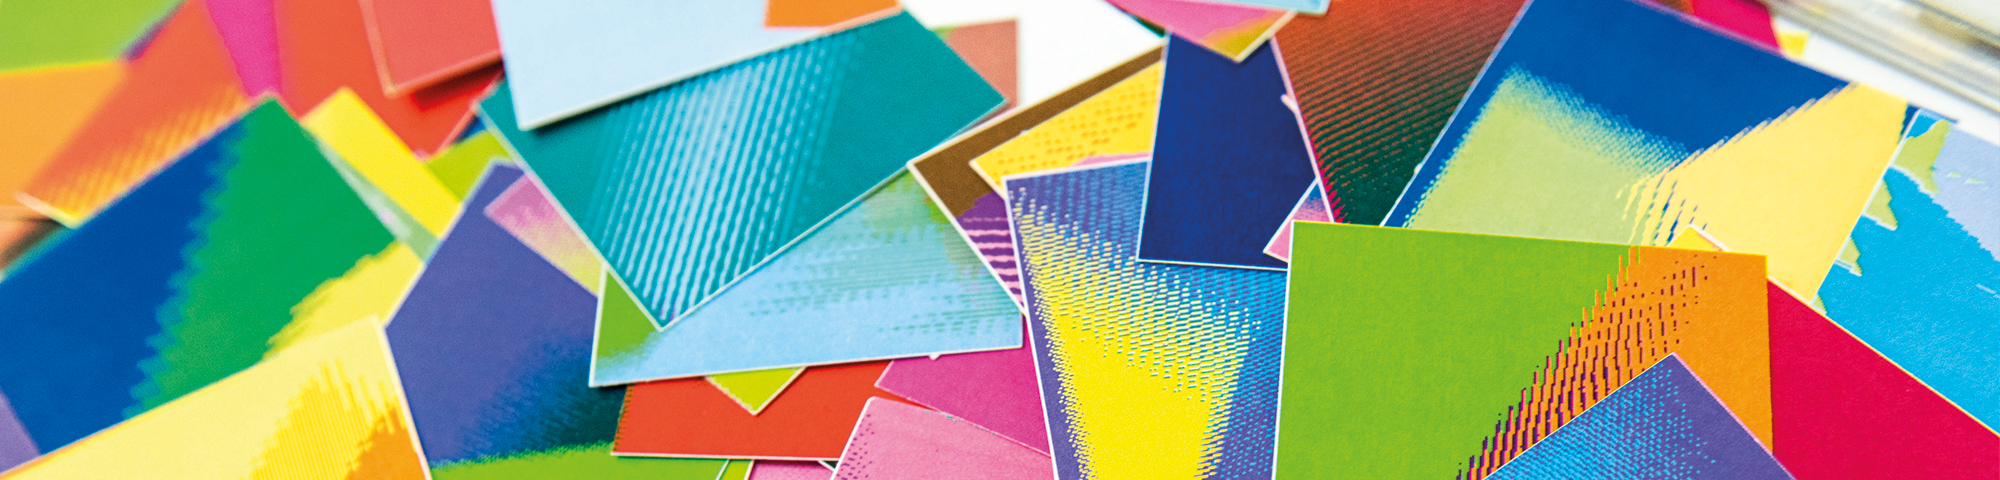 Image of various multicoloured sheets of card scattered across a table.